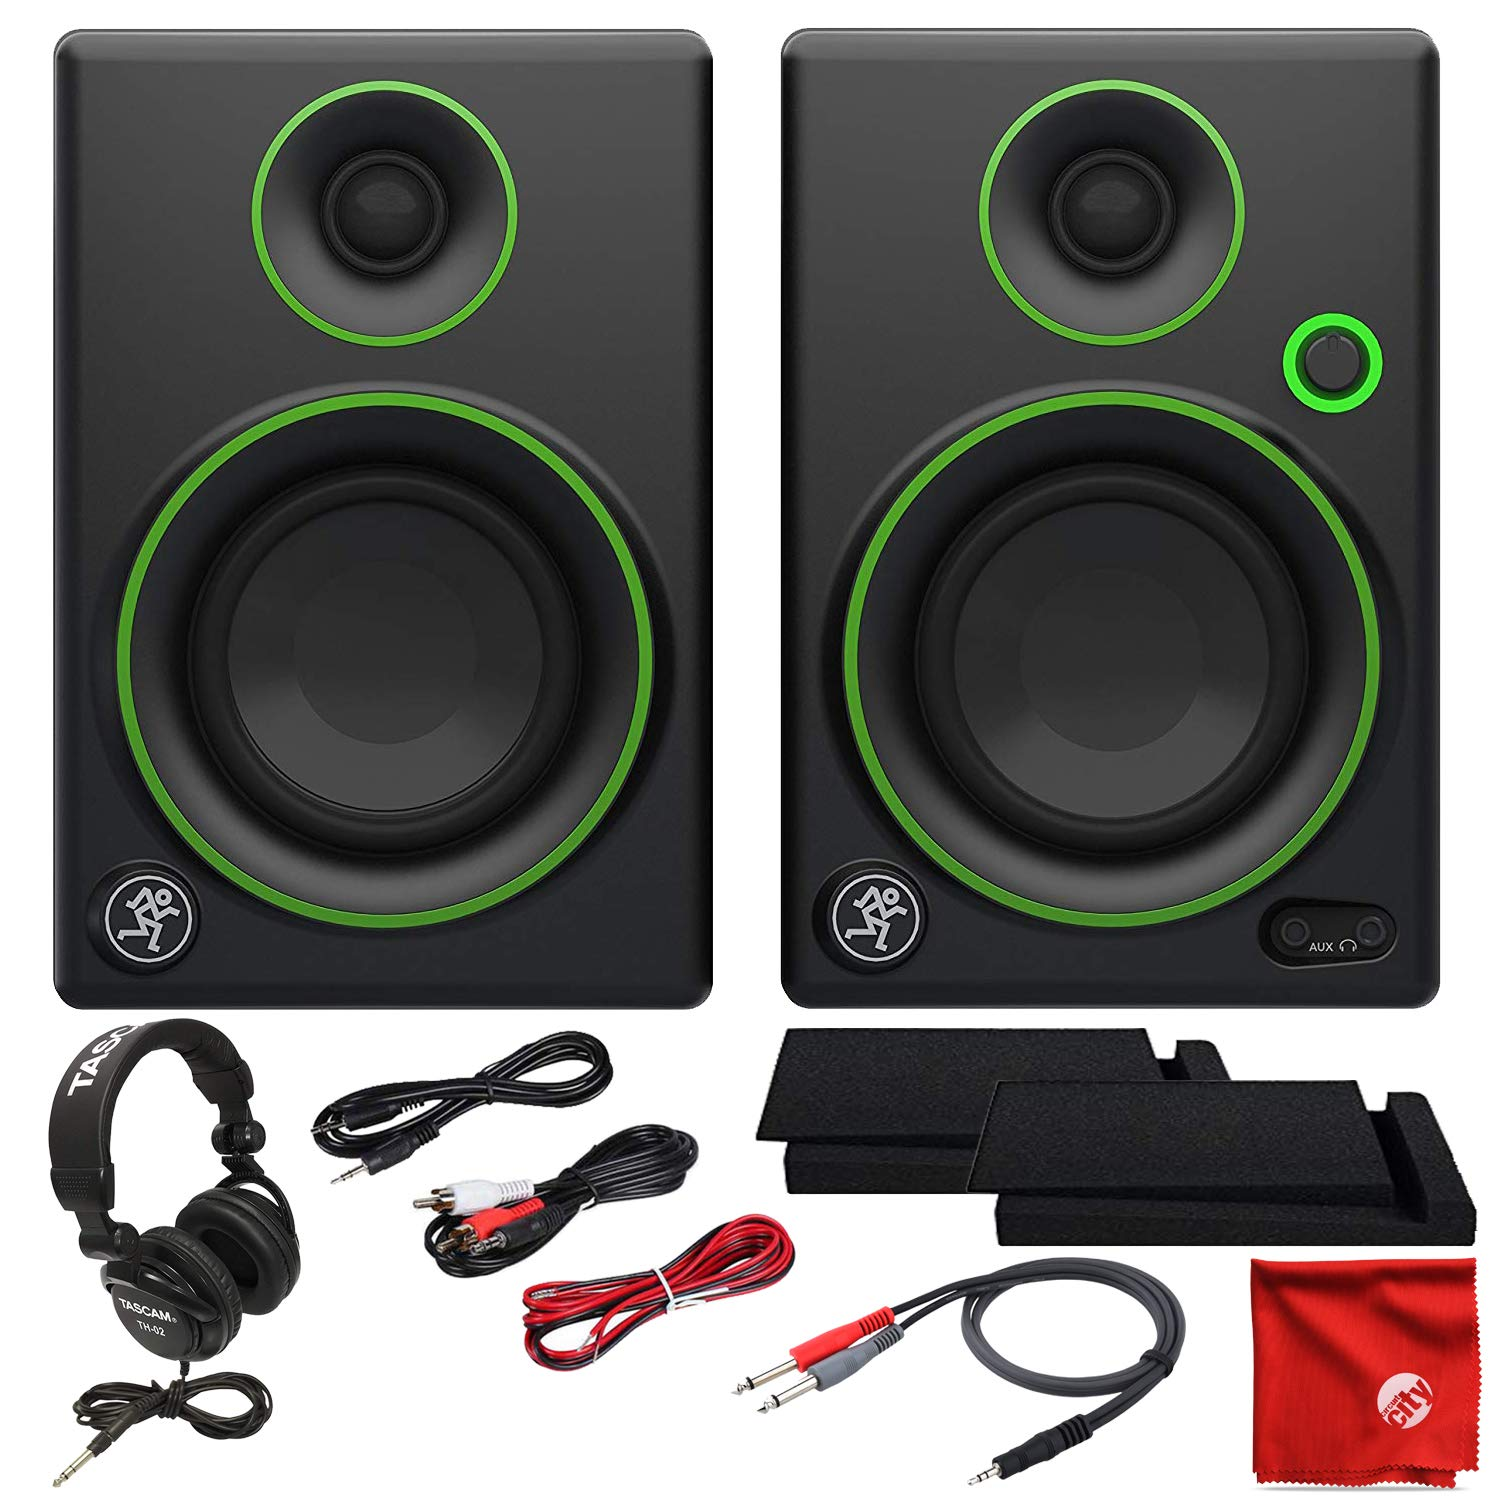 Mackie CR3 3-Inch Creative Reference Multimedia Monitors Bundle with Tascam Studio Headphones Foam Isolation Pads and Pro Cable Kit